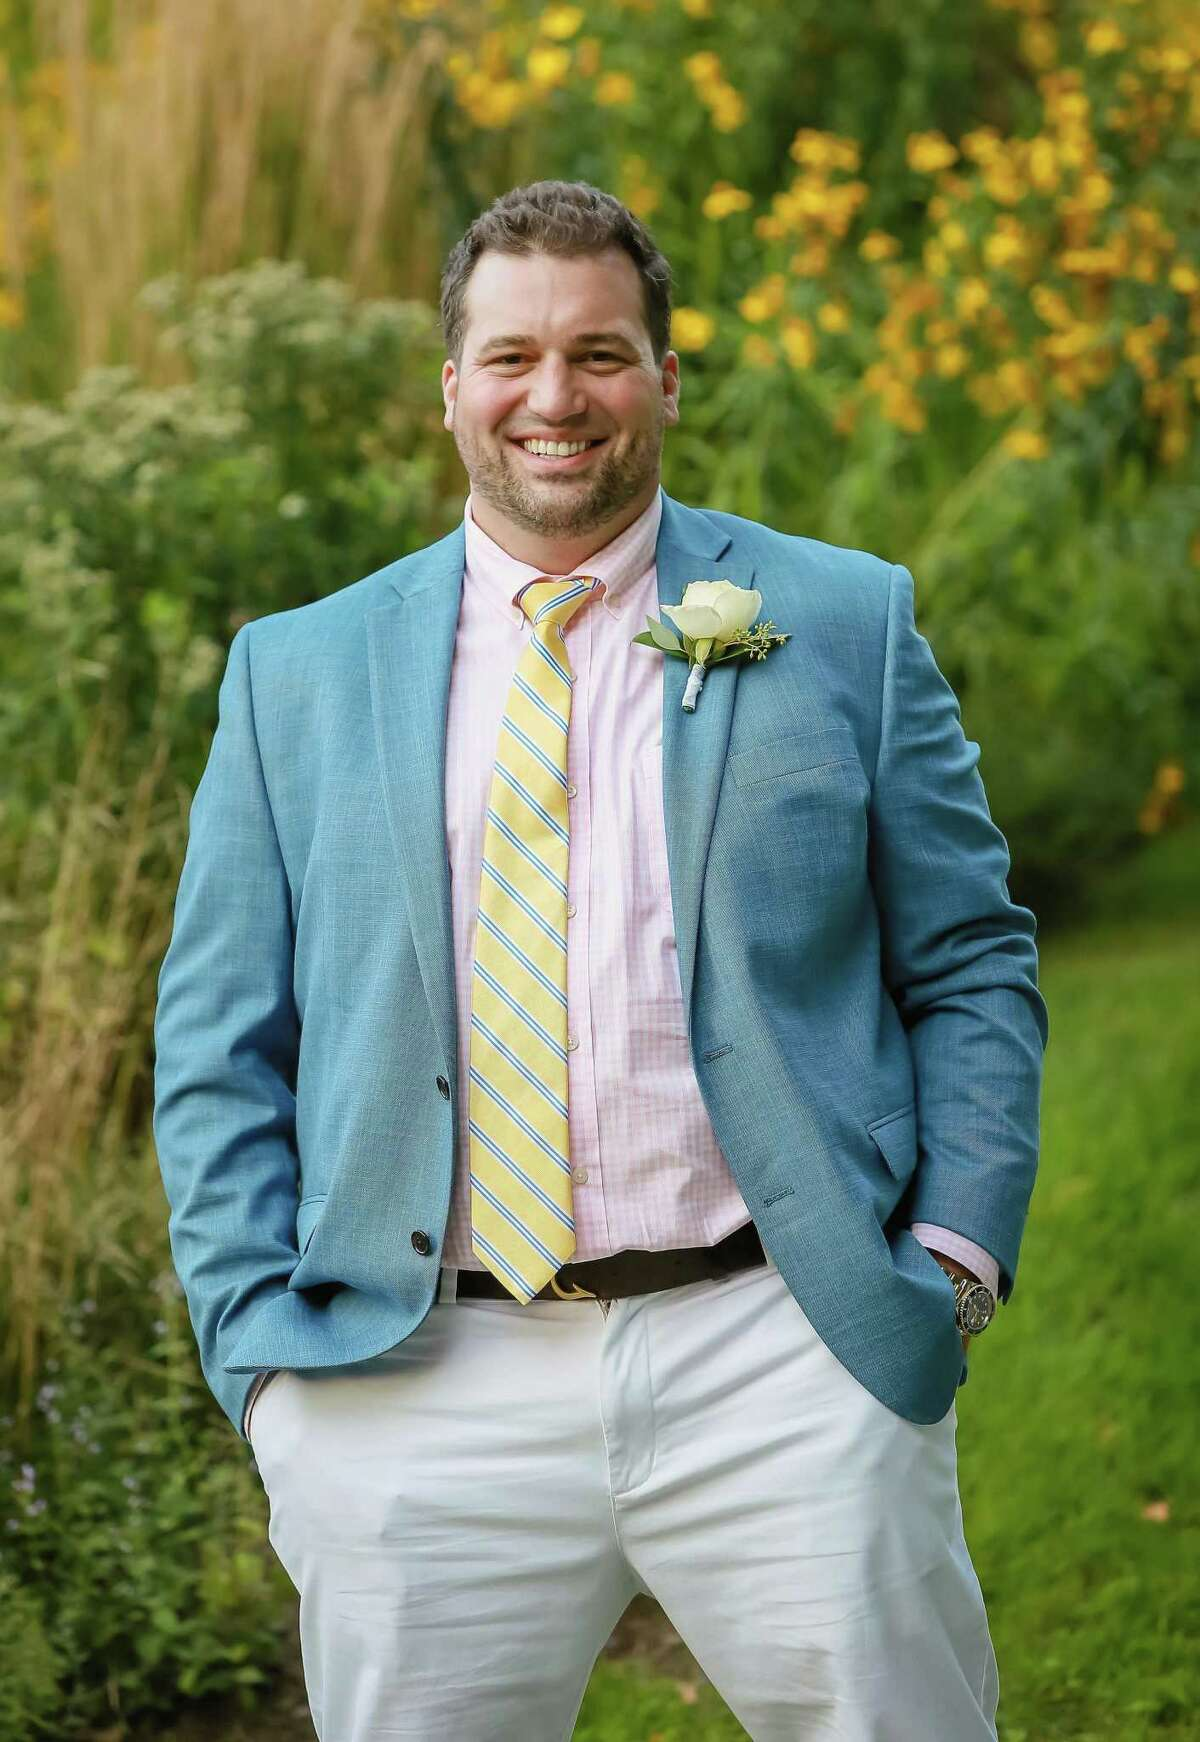 Chris Andrea, of Stamford, poses for a photo at his wedding in Dorset, VT, in September 2020. He died unexpectedly on May 29, 10 days after a major leg surgery.